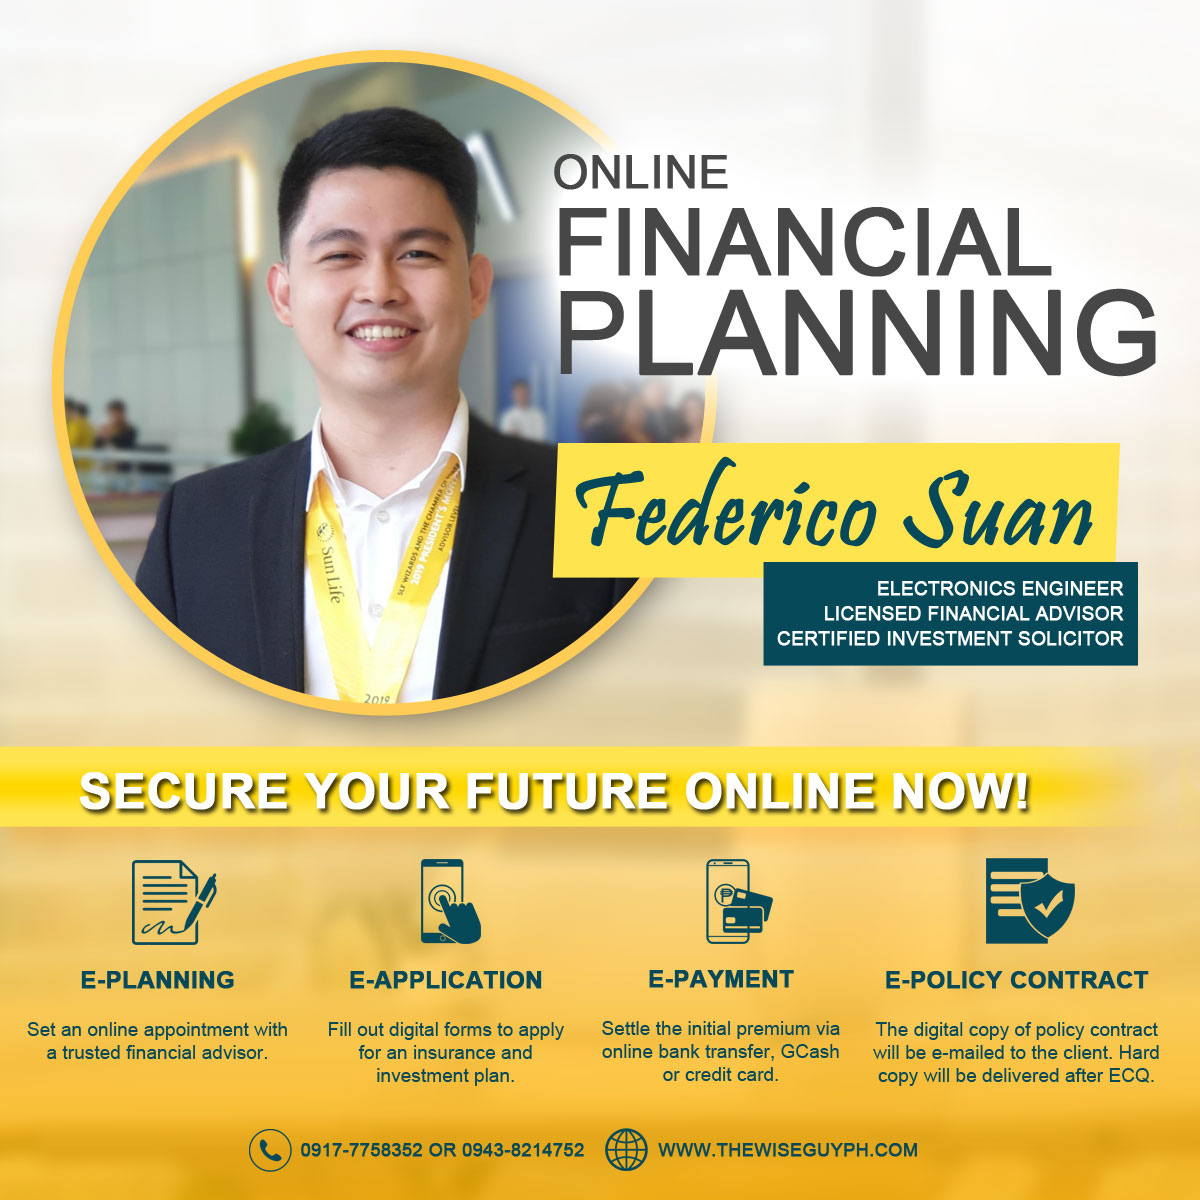 Free financial planning online